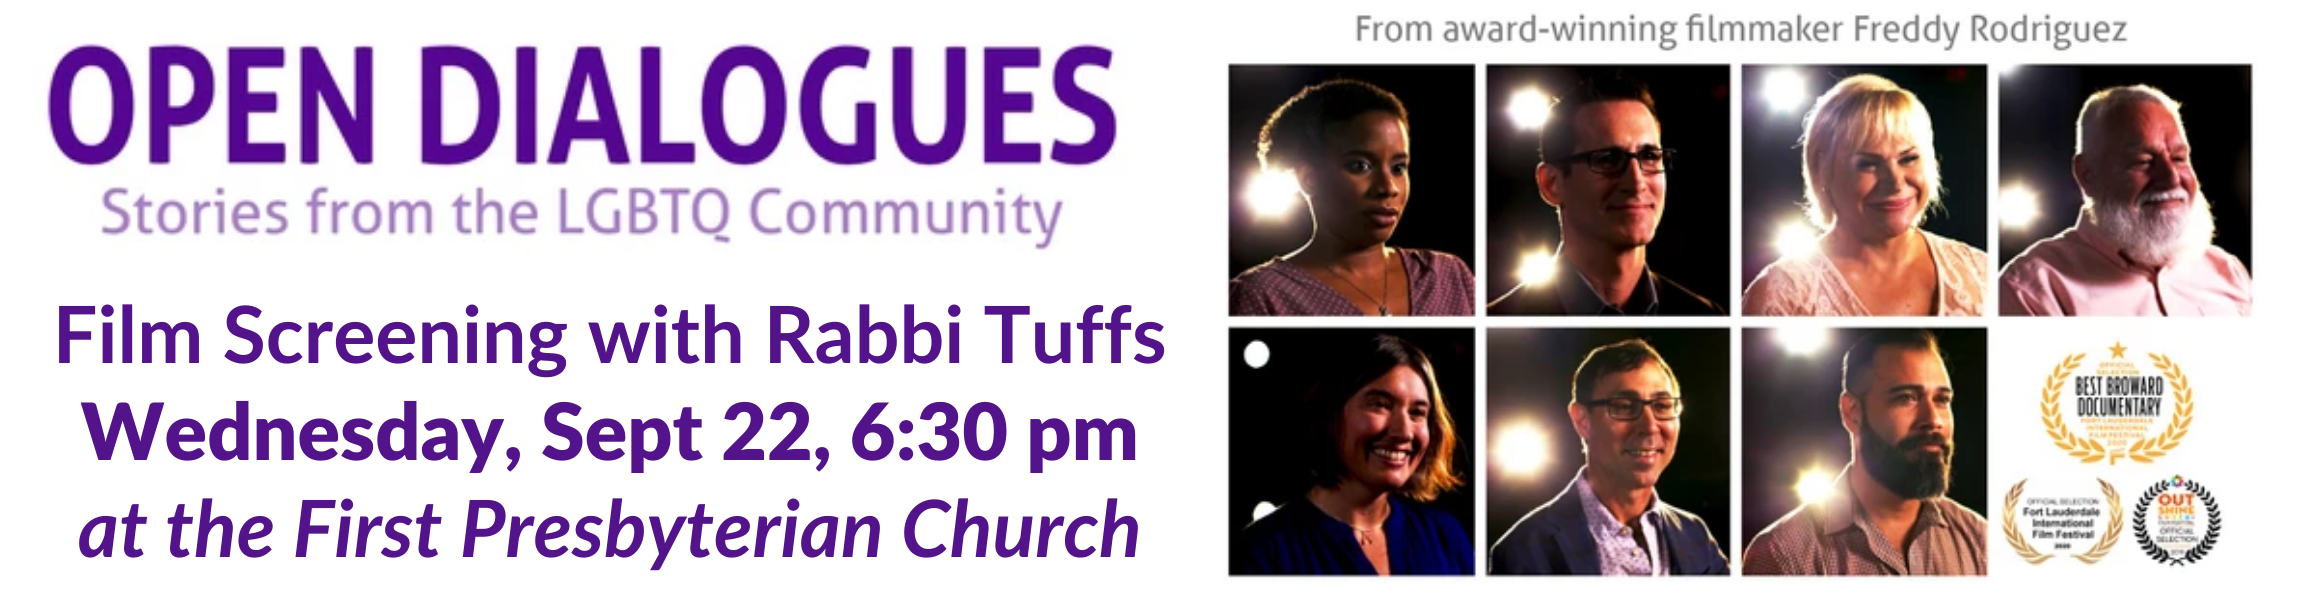 """</a>                                                                                                                                                                                      <a href=""""https://www.artandculturecenter.org/post/first-presbyterian-church-of-hollywood-to-host-screening-of-open-dialogues"""" class=""""slider_link""""                             target=""""_blank"""">                             Learn More                            </a>"""